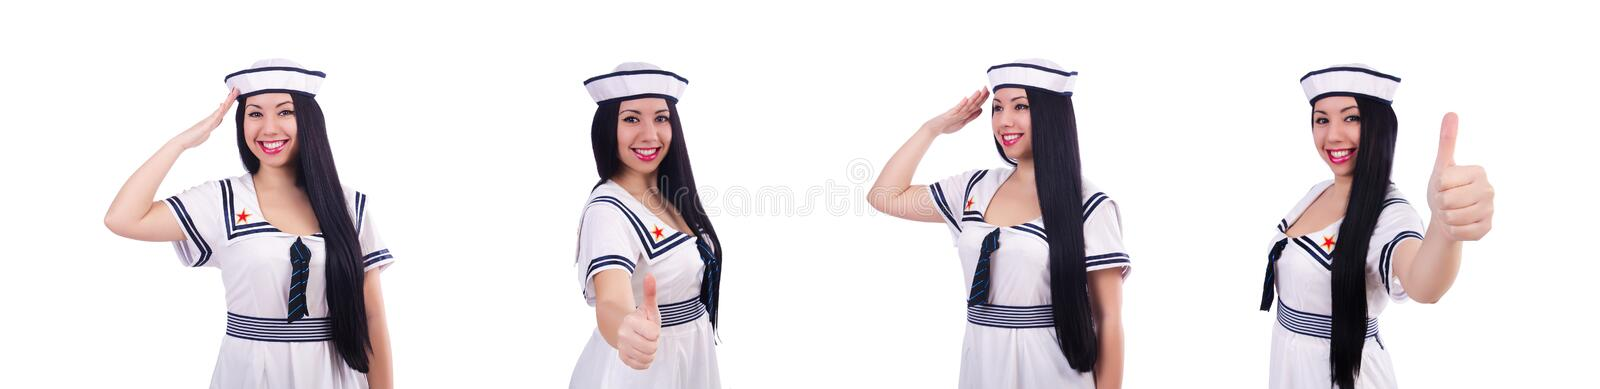 Young airhostess saluting isolated on white. The young airhostess saluting isolated on white royalty free stock photography